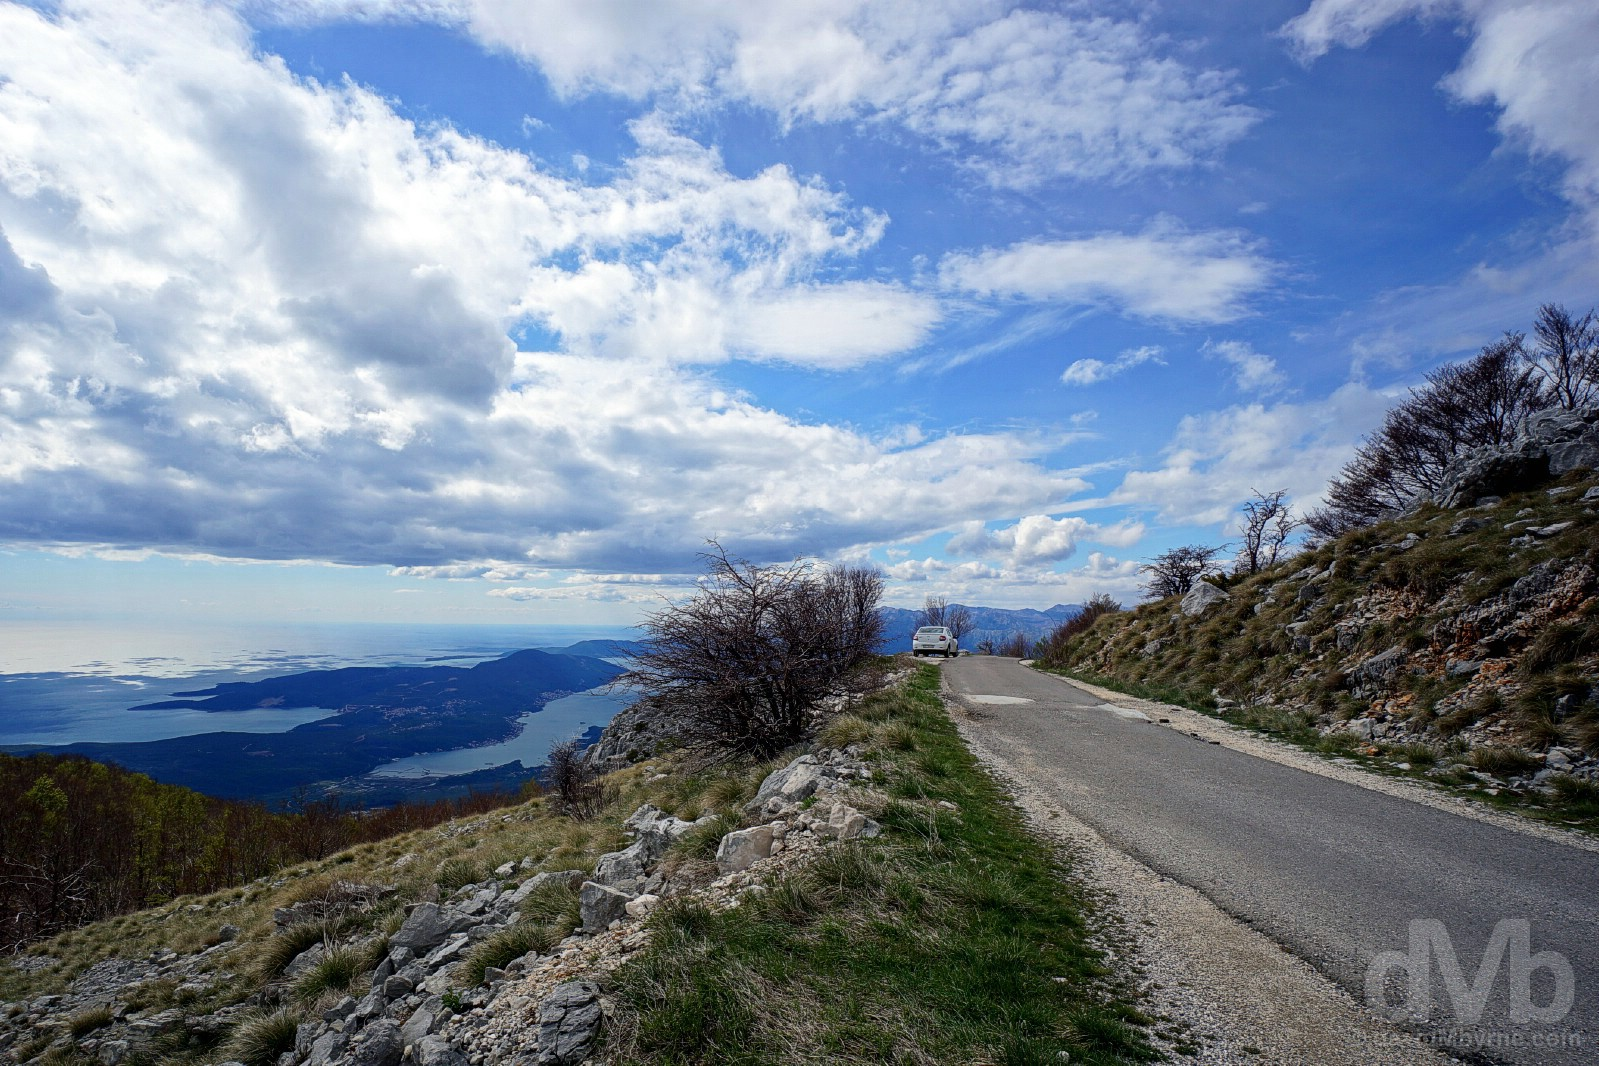 The Adriatic Coast & the Bay of Kotor as seen from the road to Njegos Mausoleum in Lovcen National Park, Montenegro. April 20, 2017.